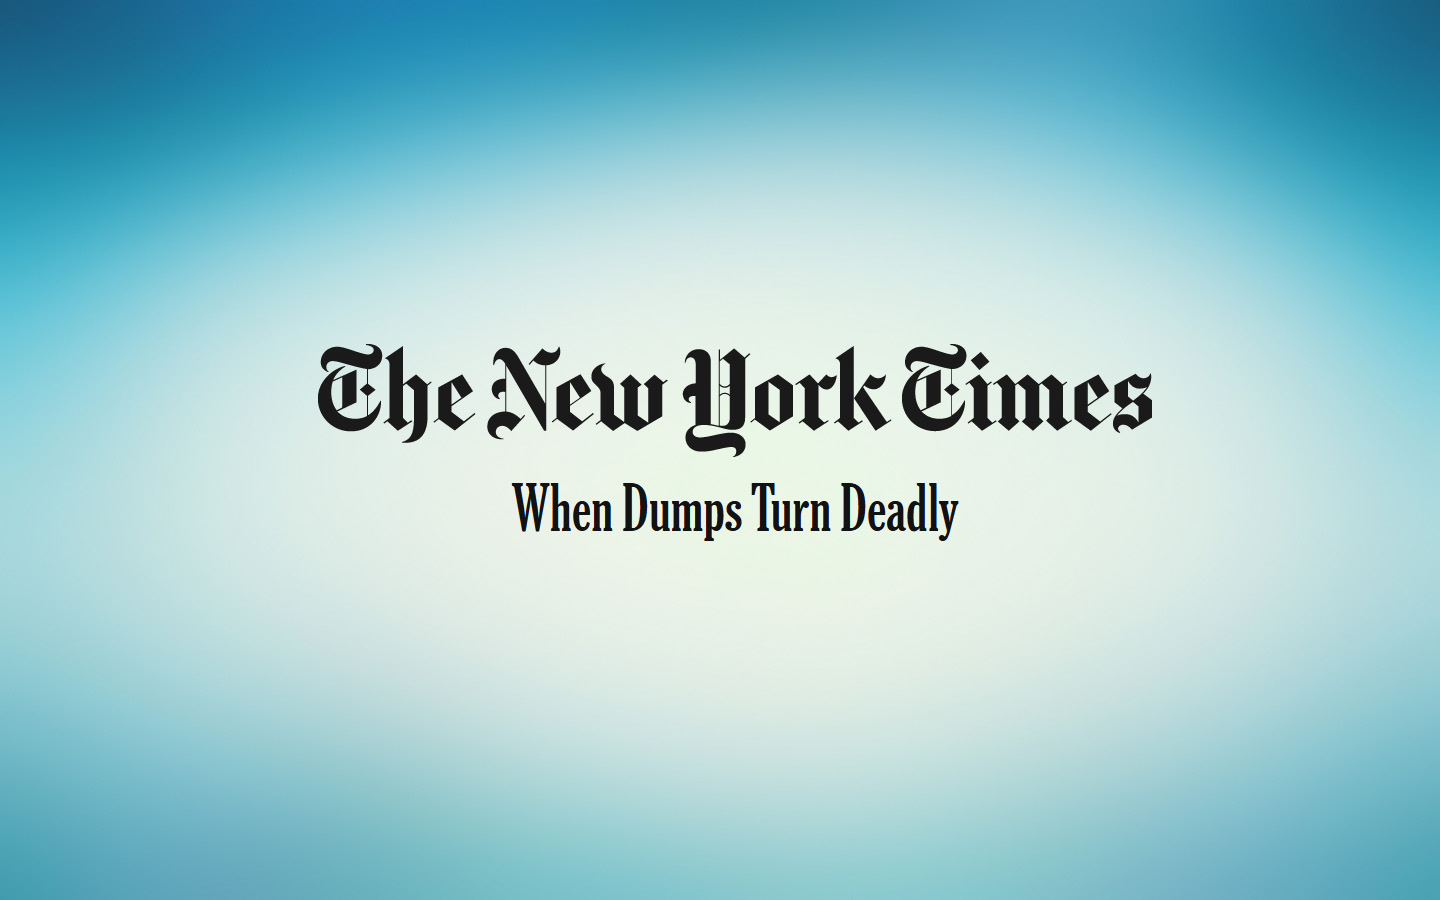 New york times Antonis Mavropoulos